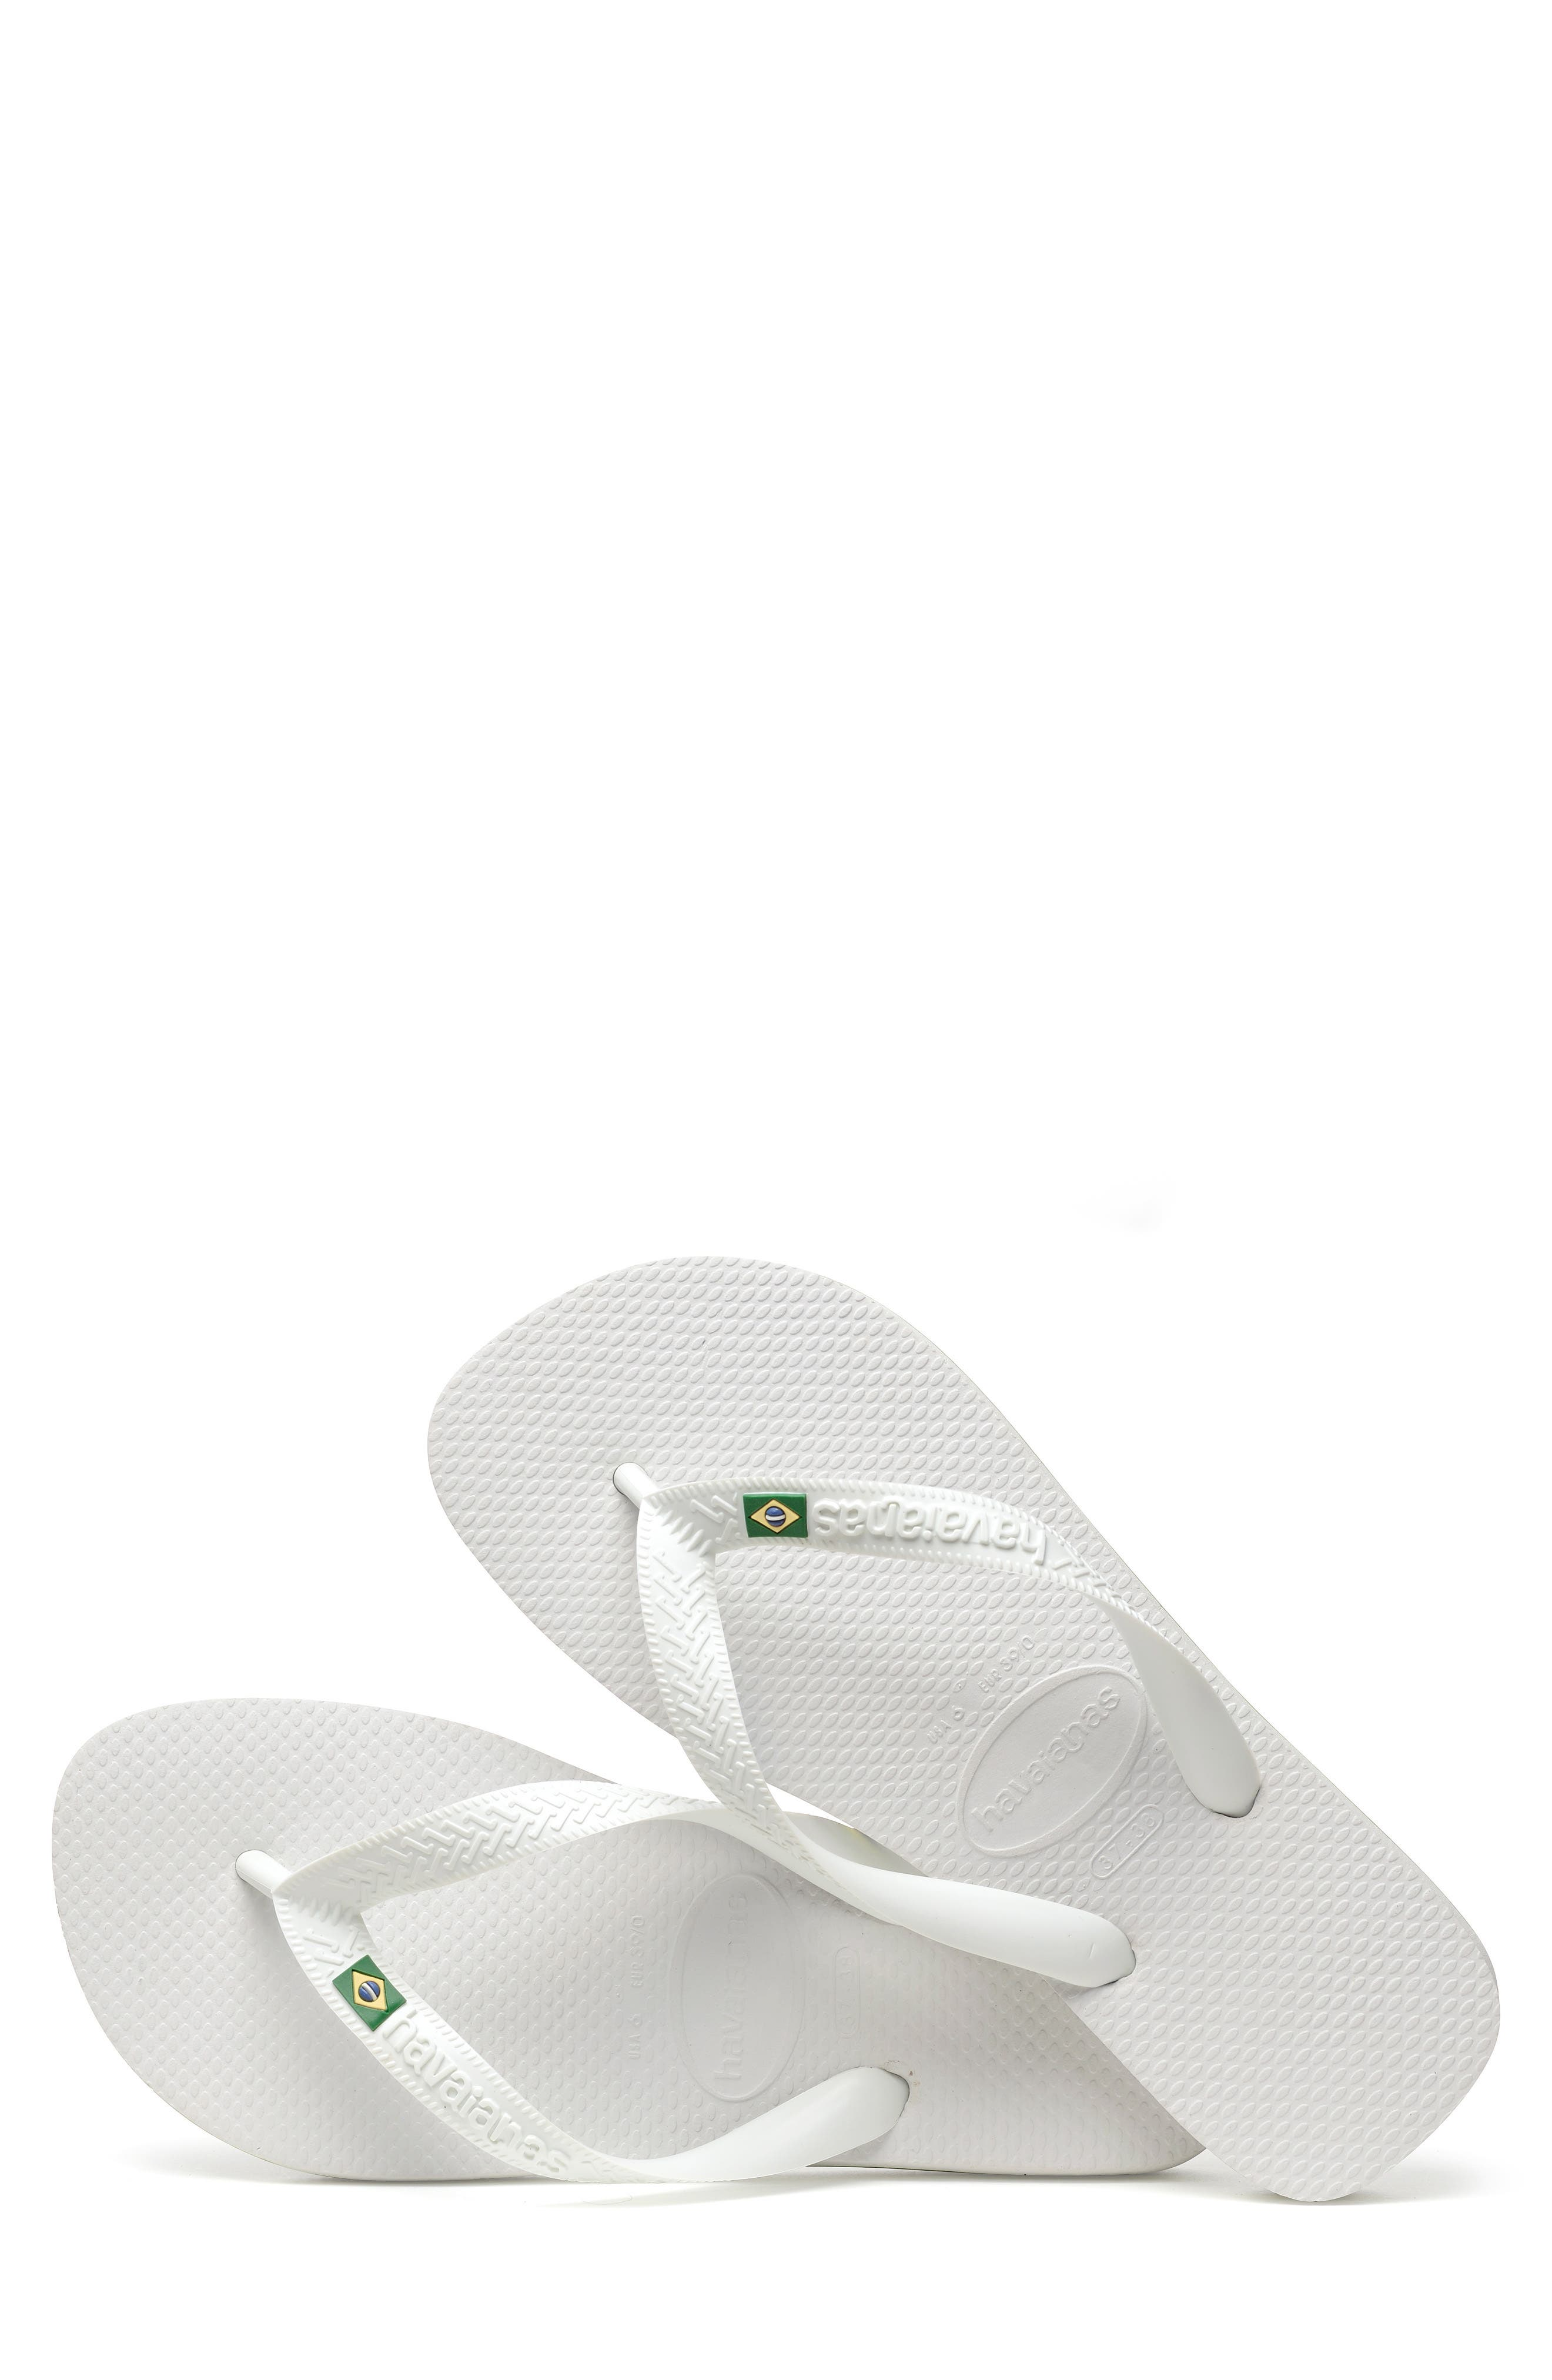 HAVAIANAS, 'Brazil' Flip Flop, Alternate thumbnail 5, color, WHITE